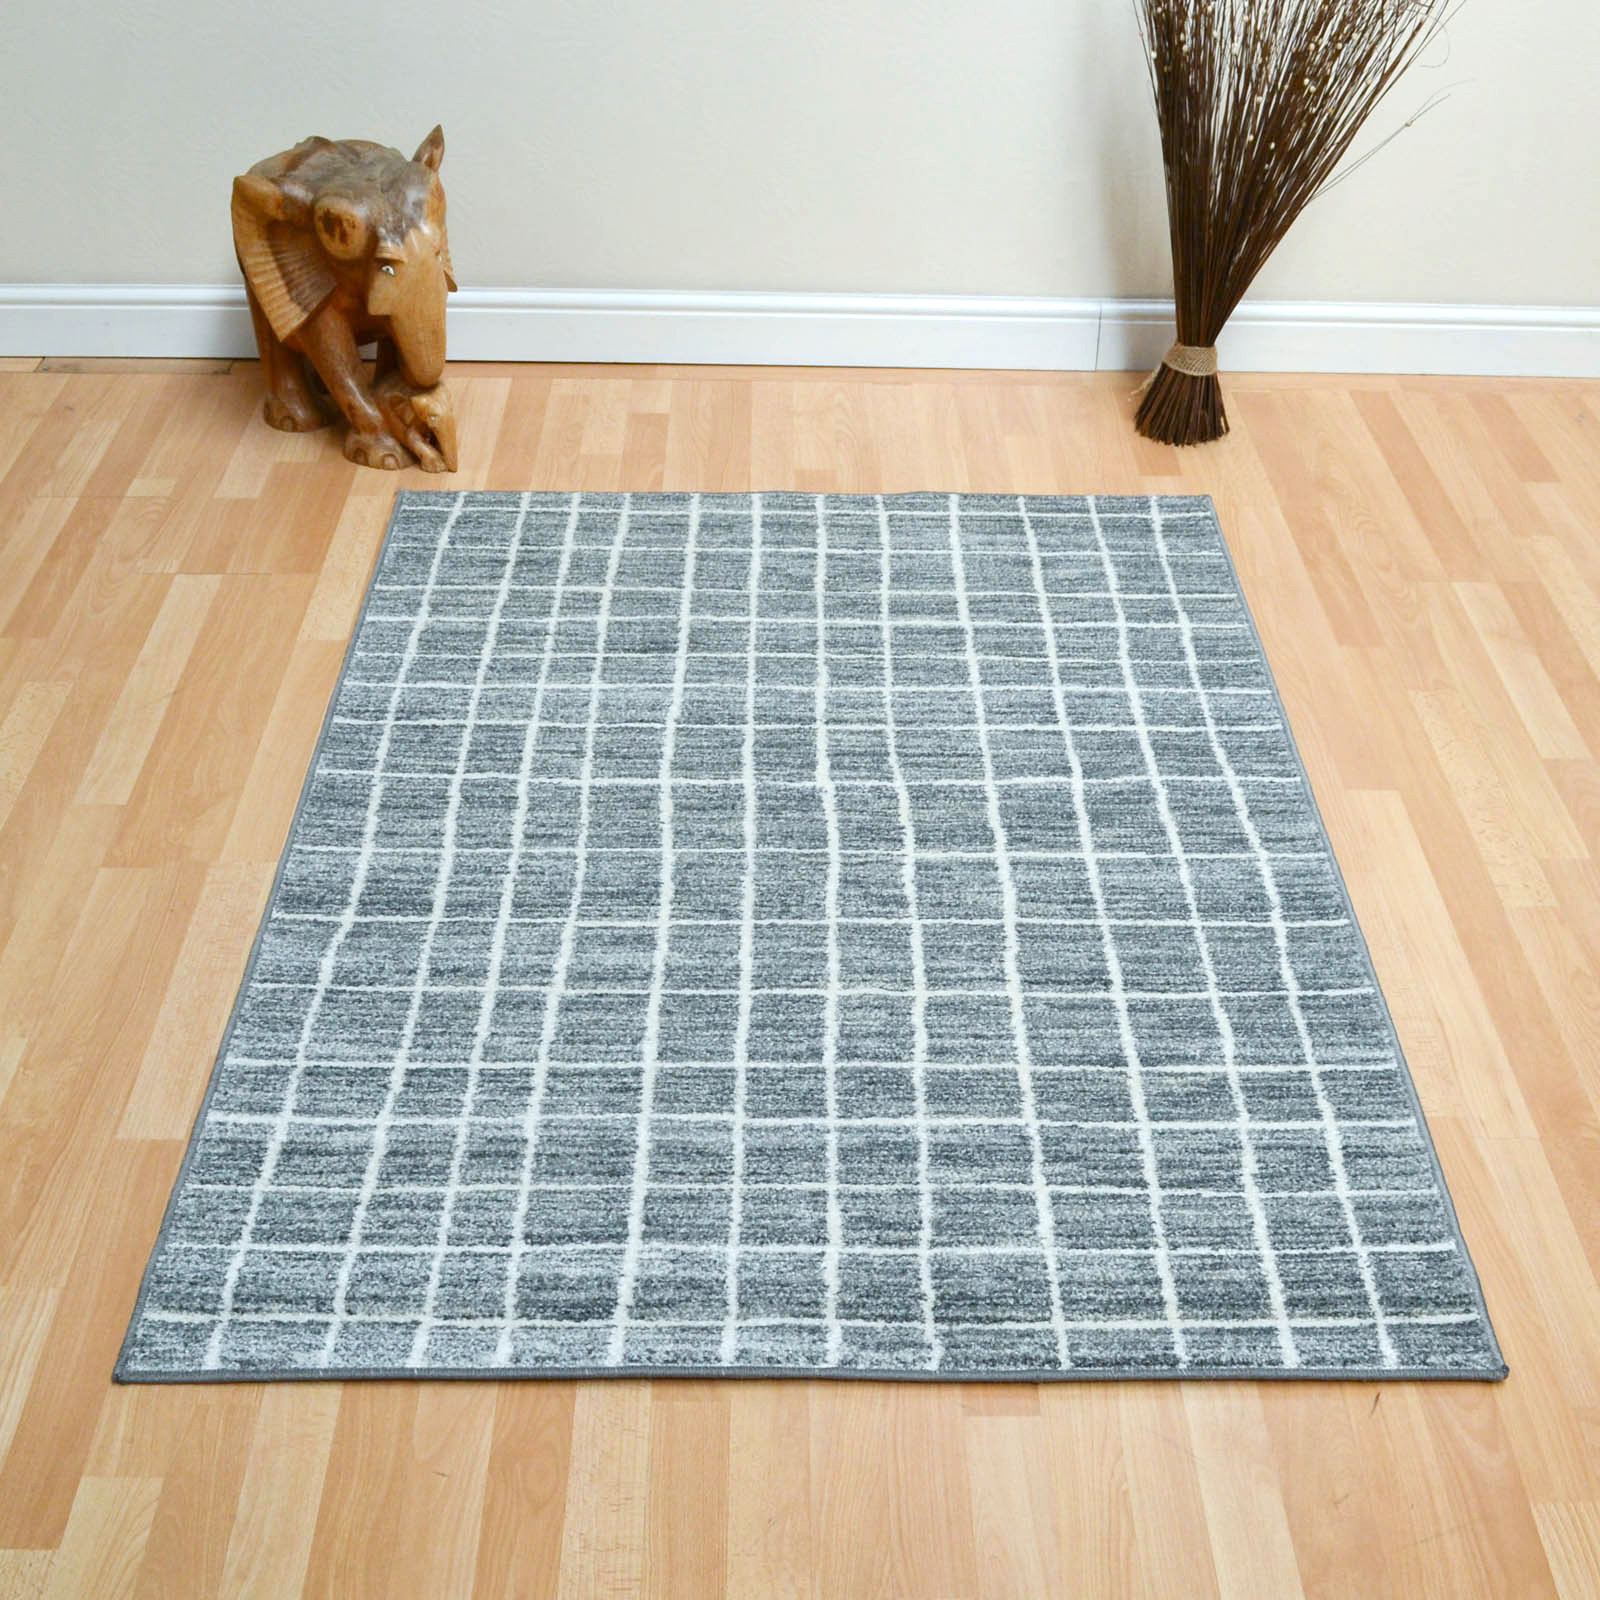 Tibet Grid Rugs in Silver